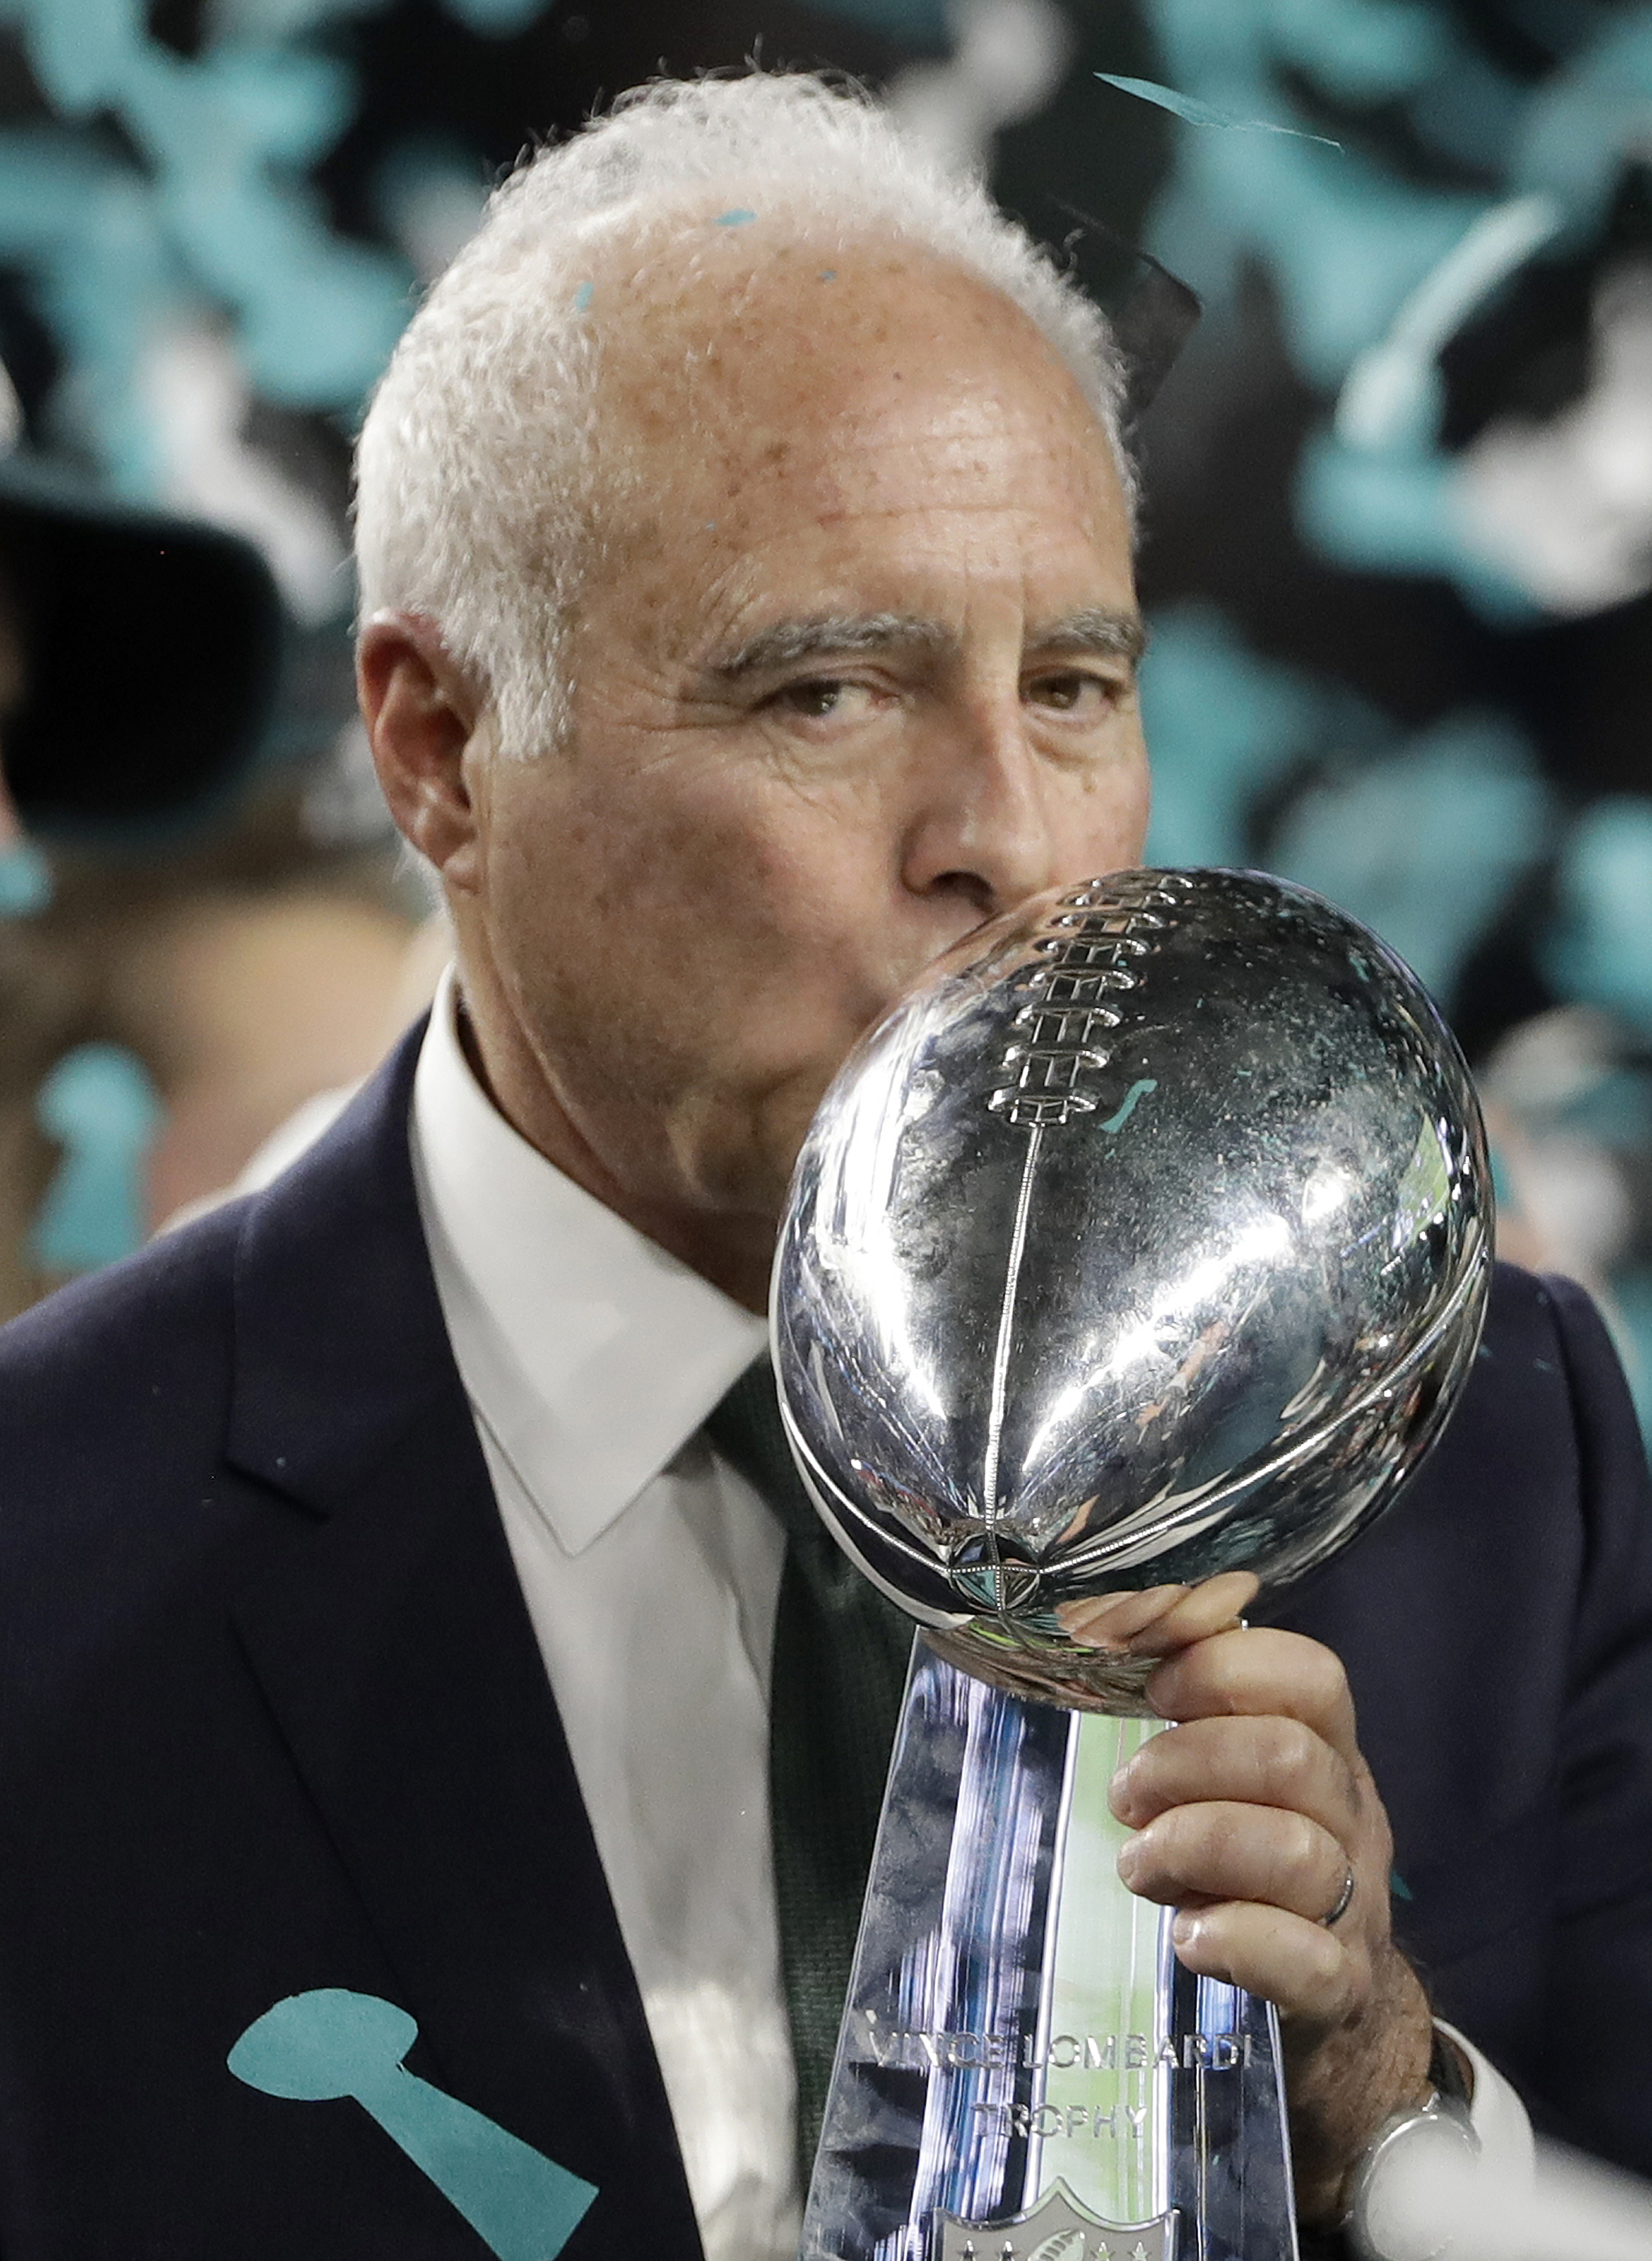 "<div class=""meta image-caption""><div class=""origin-logo origin-image ap""><span>AP</span></div><span class=""caption-text"">Philadelphia Eagles owner Jeffrey Lurie kisses the Vince Lombardi Trophy after the NFL Super Bowl 52 football game against the New England Patriots. (AP Photo/Chris O'Meara)</span></div>"